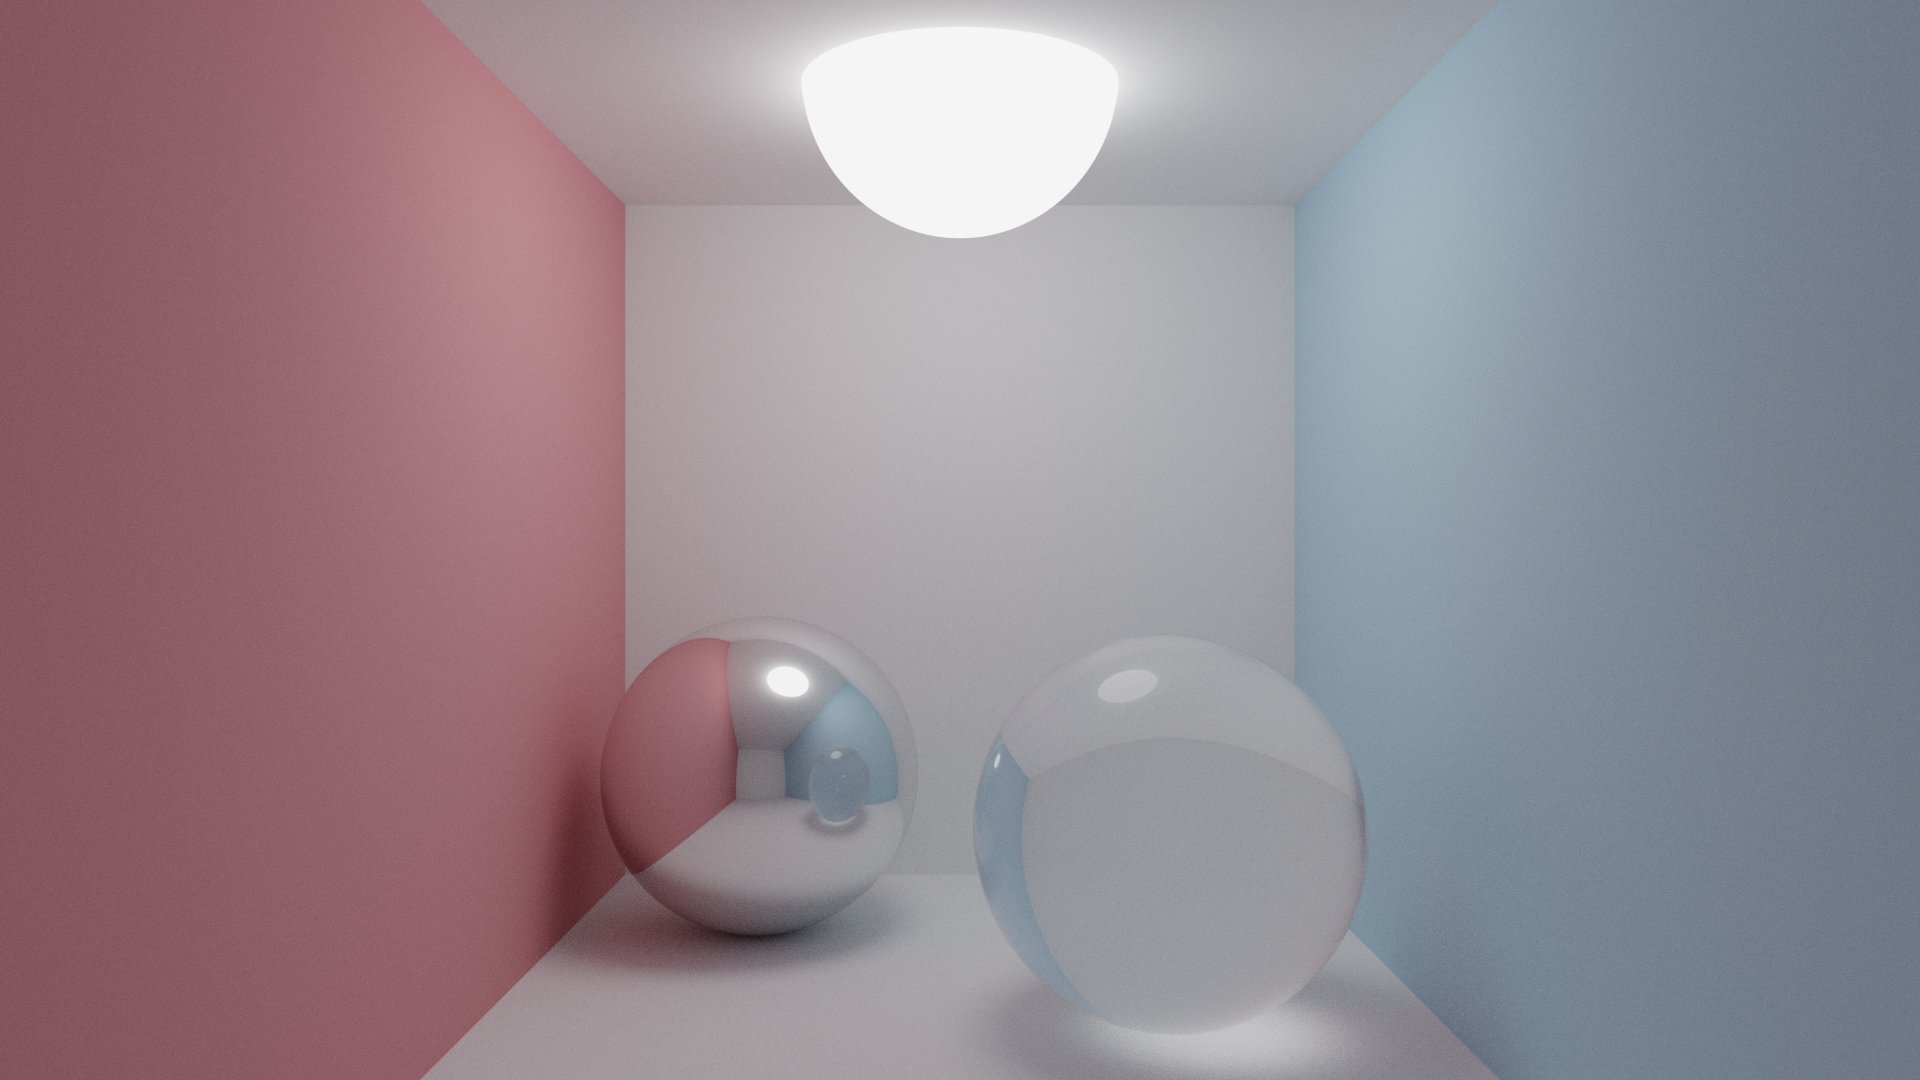 Rendering made with Cyclese Render with Cycles